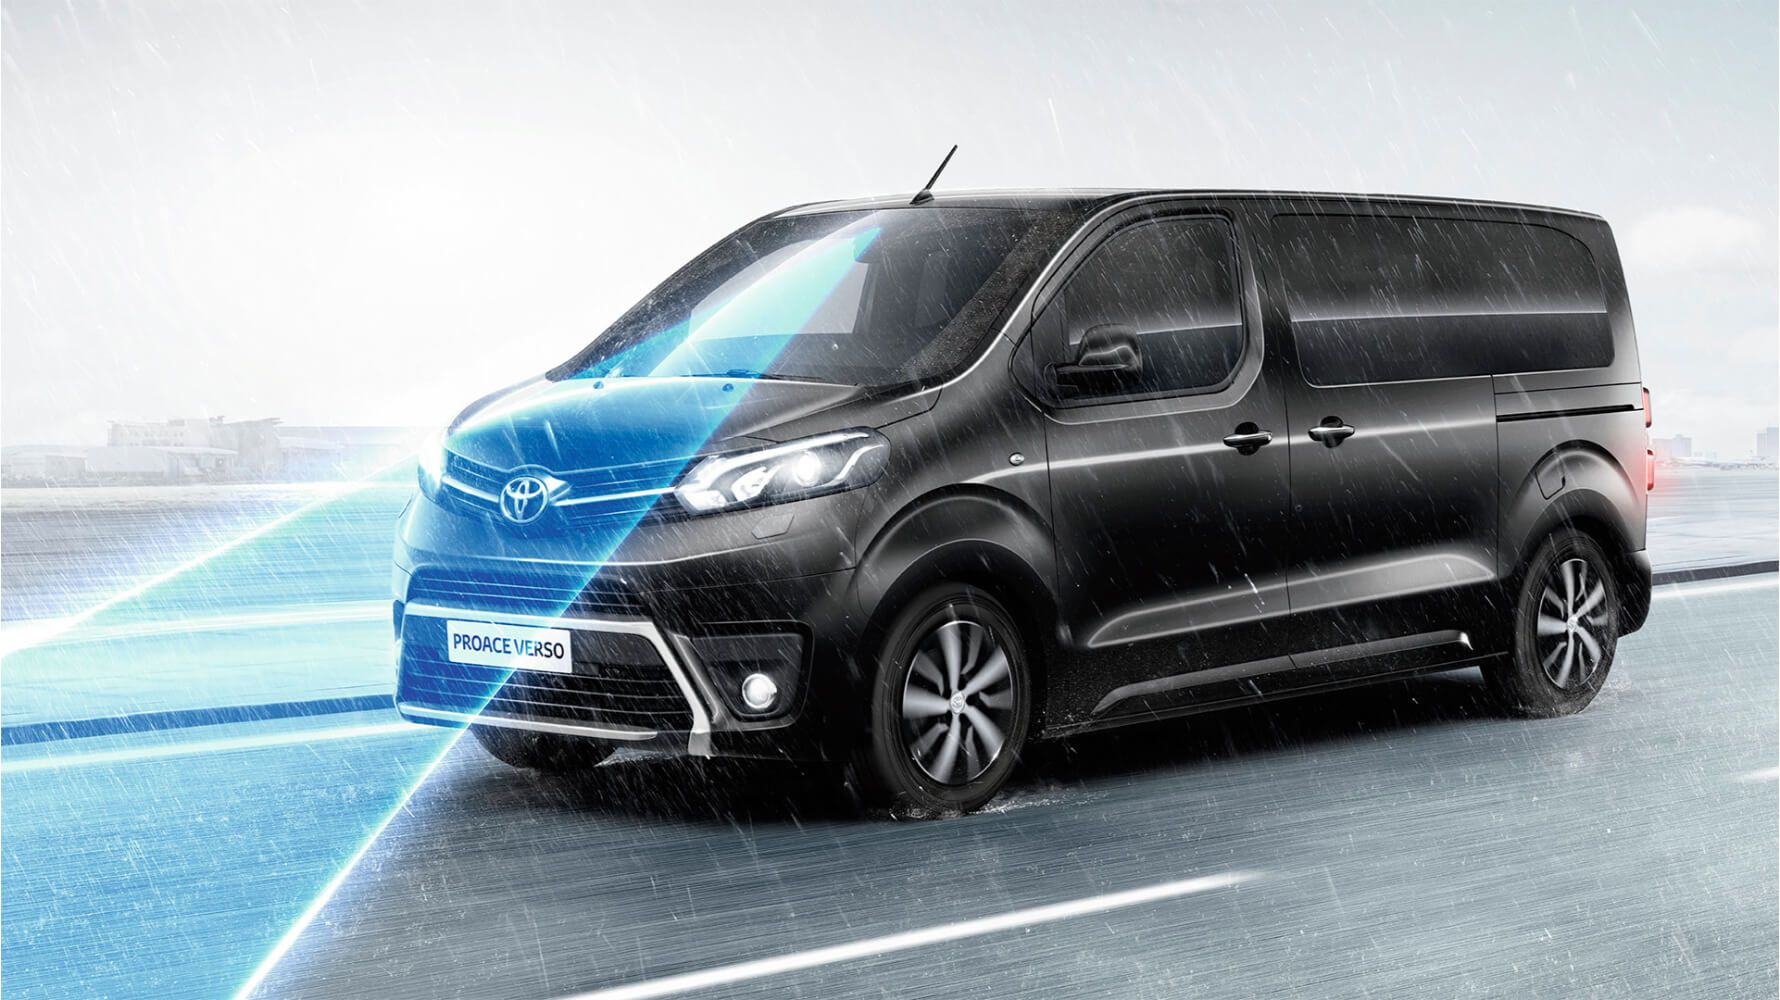 toyota_proace_verso_2019_gallery_005_full_tcm_3046_1703769